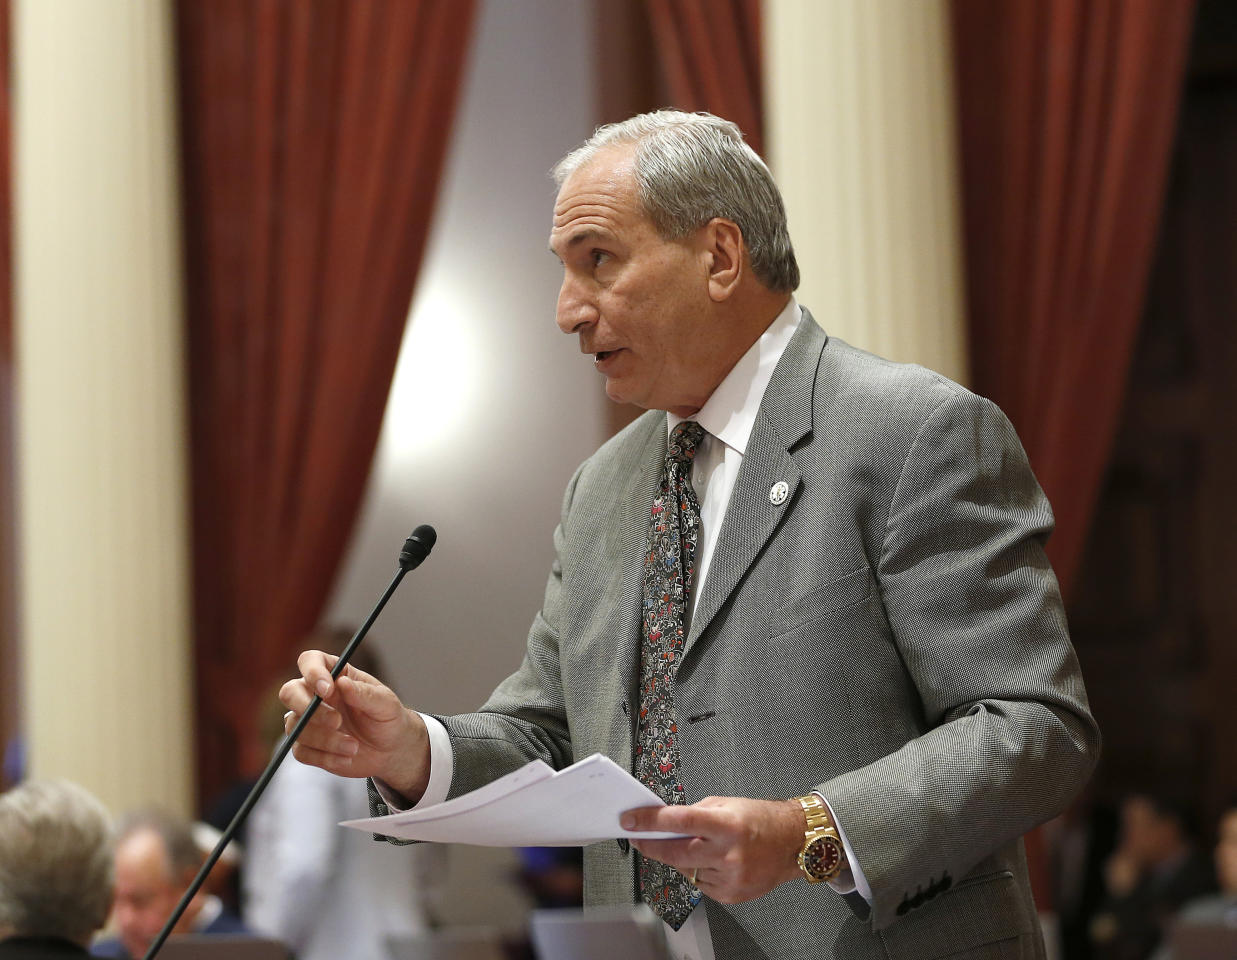 State Sen. Jeff Stone, R-Temecula, addresses the state Senate, Monday, May 20, 2019, in Sacramento, Calif. Stone is among those Republicans opposing proposals by Gov. Gavin Newsom and Sen. Maria Elena Durazo, D-Los Angeles, to expand California's Medicaid program, known as Medi-Cal to undocumented immigrants. If approved, Newsom's plan would offer government-funded health care benefits to immigrant adults ages 19 to 25 who are living in the country illegally. Durazo has proposed a bill to expand that further to include seniors age 65 and older (AP Photo/Rich Pedroncelli)